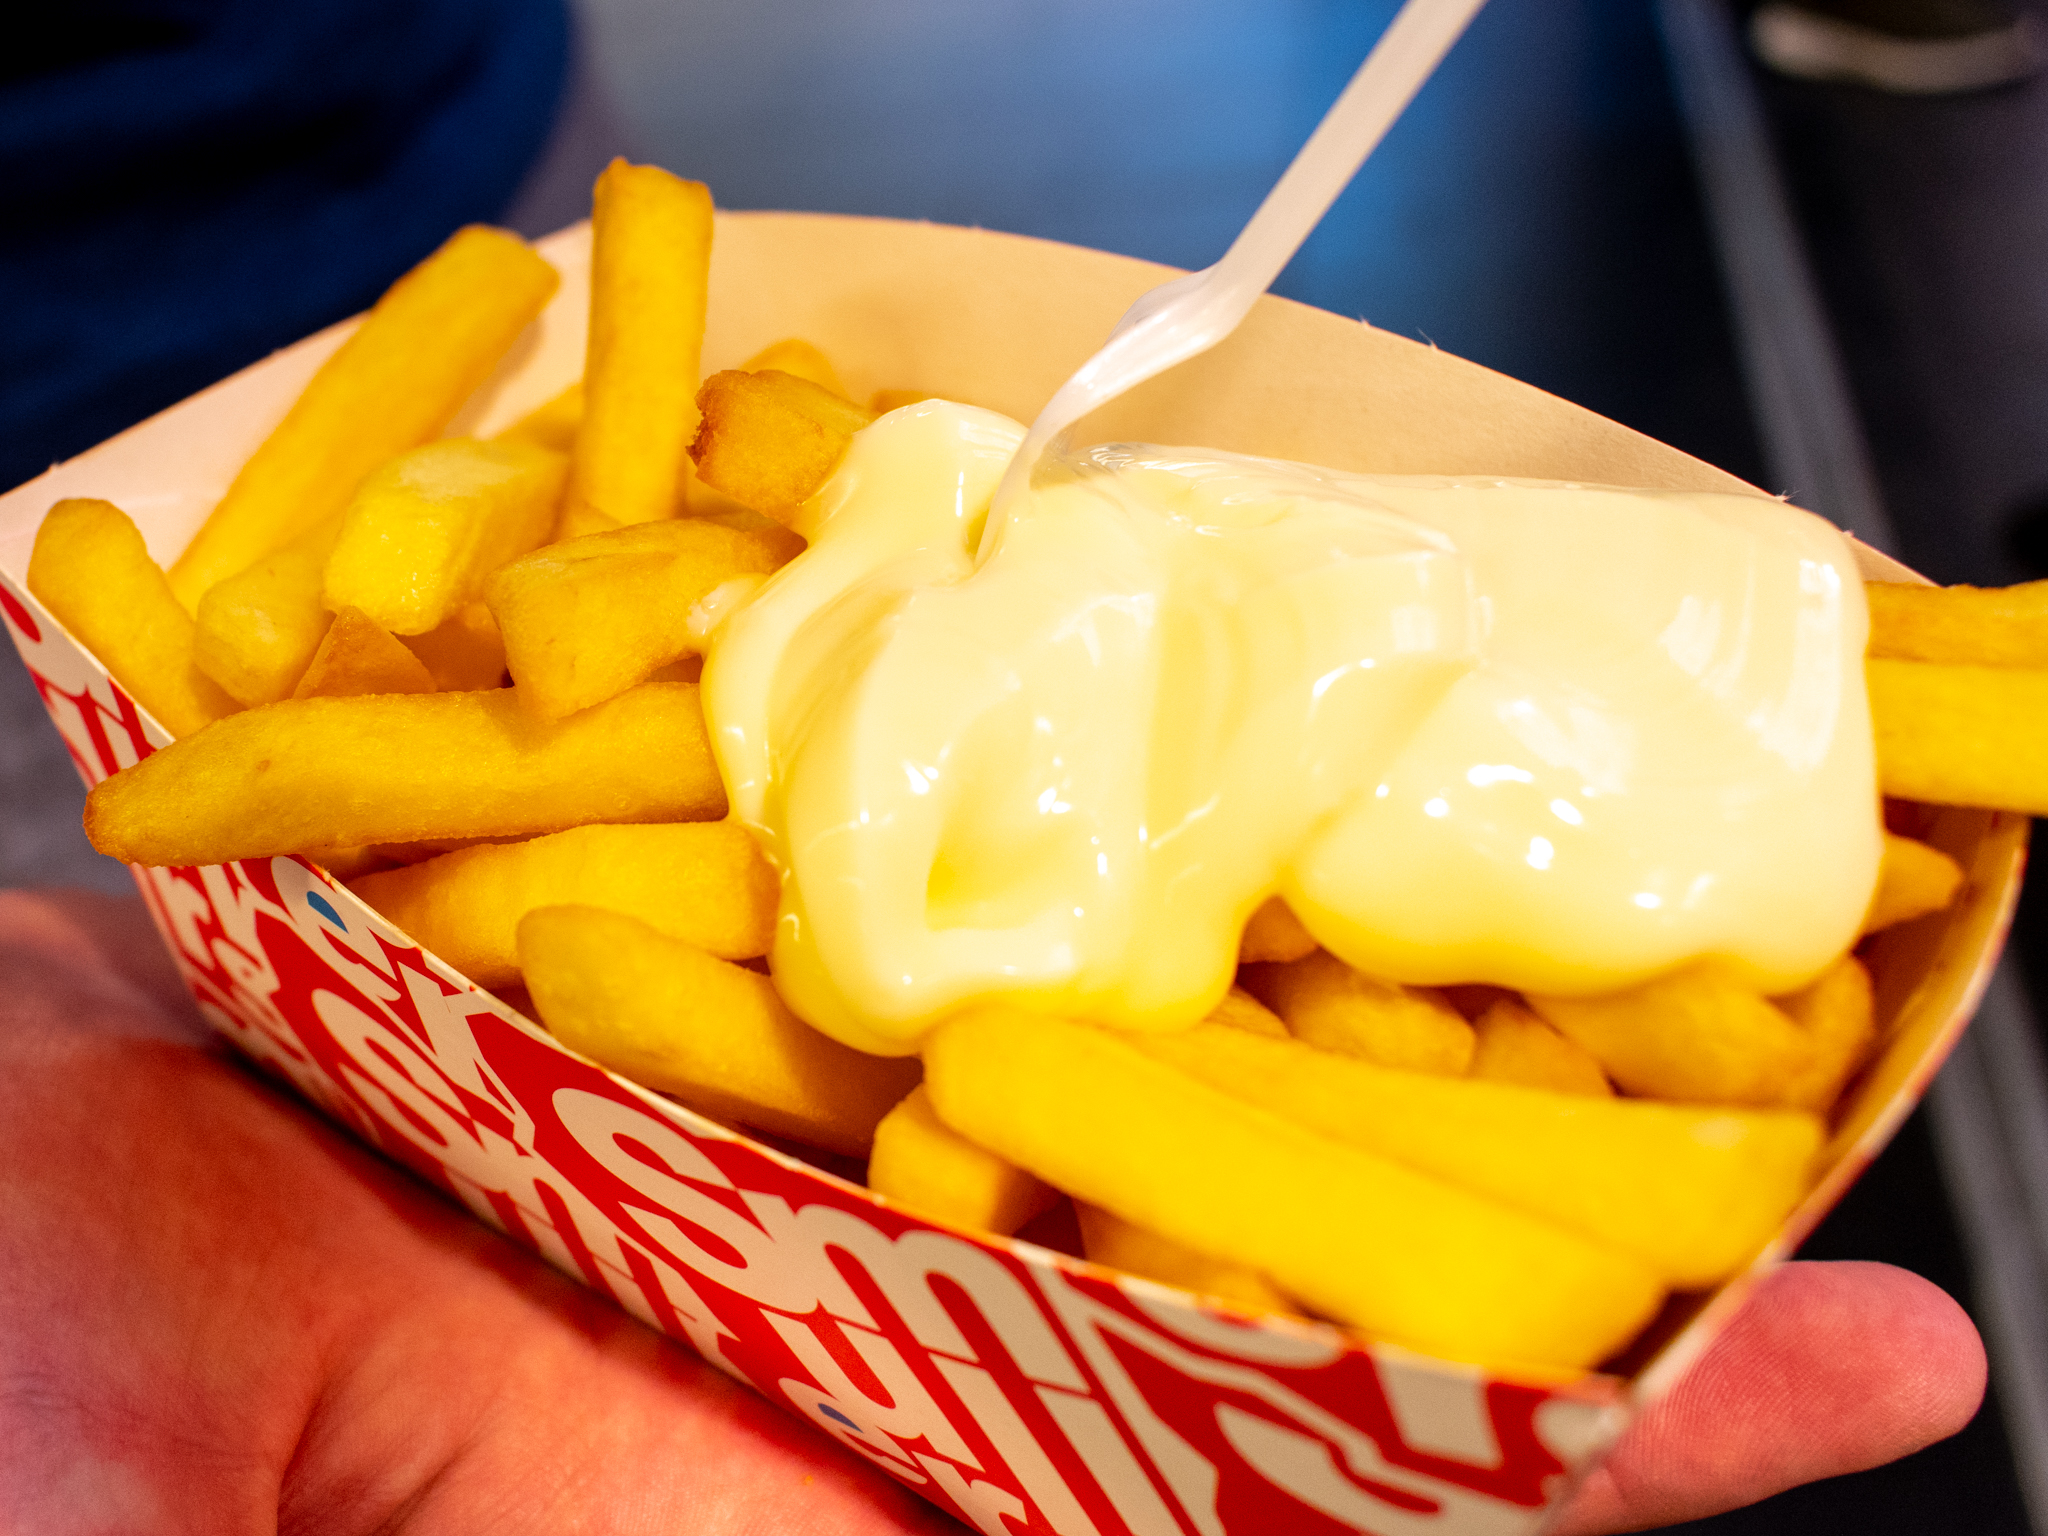 uprooted-traveler-vegan-guide-mayo-fries-amsterdam-smullers-plant-based